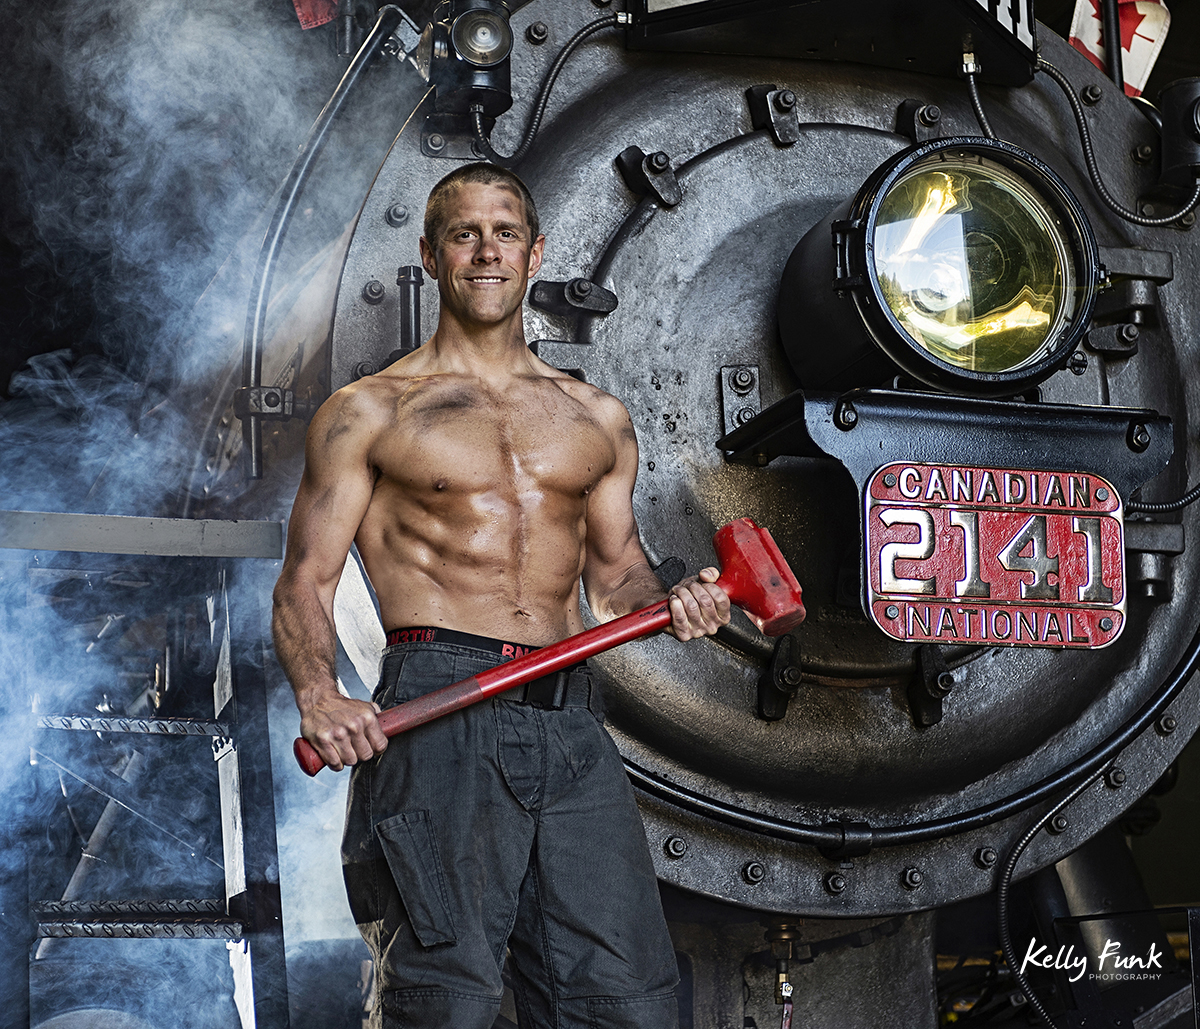 a good looking fire fighter poses for a commercial portrait during shooting for the 2019 Kamloops fire fighters calendar, Thompson Okanagan region, British Columbia, Canada